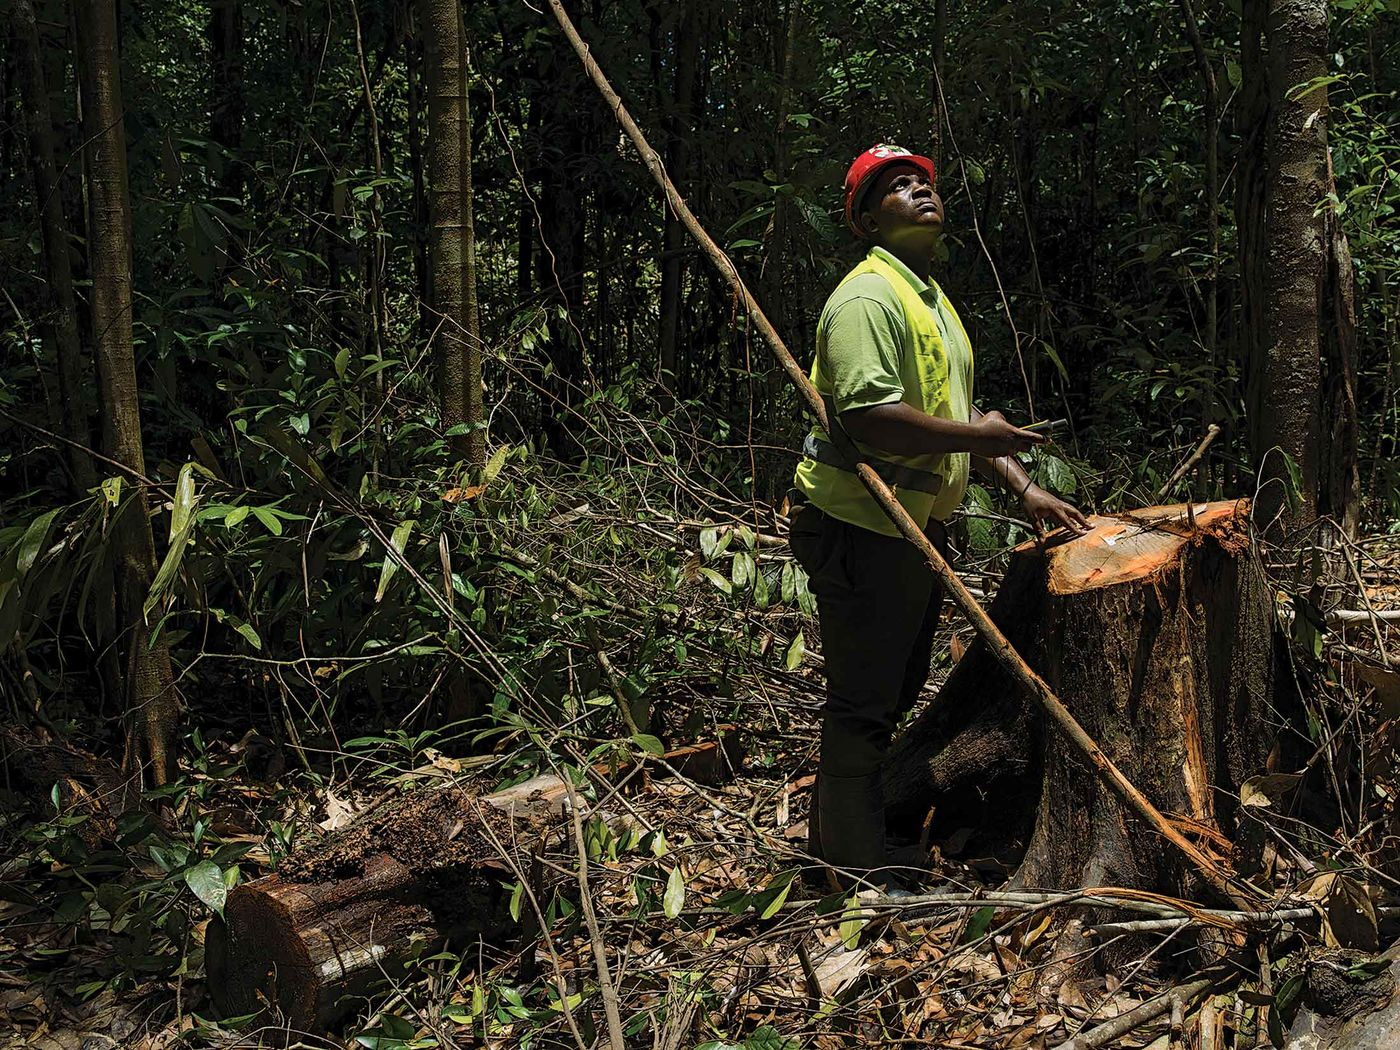 relates to How to Make Money Off Rainforests Without Cutting Them Down